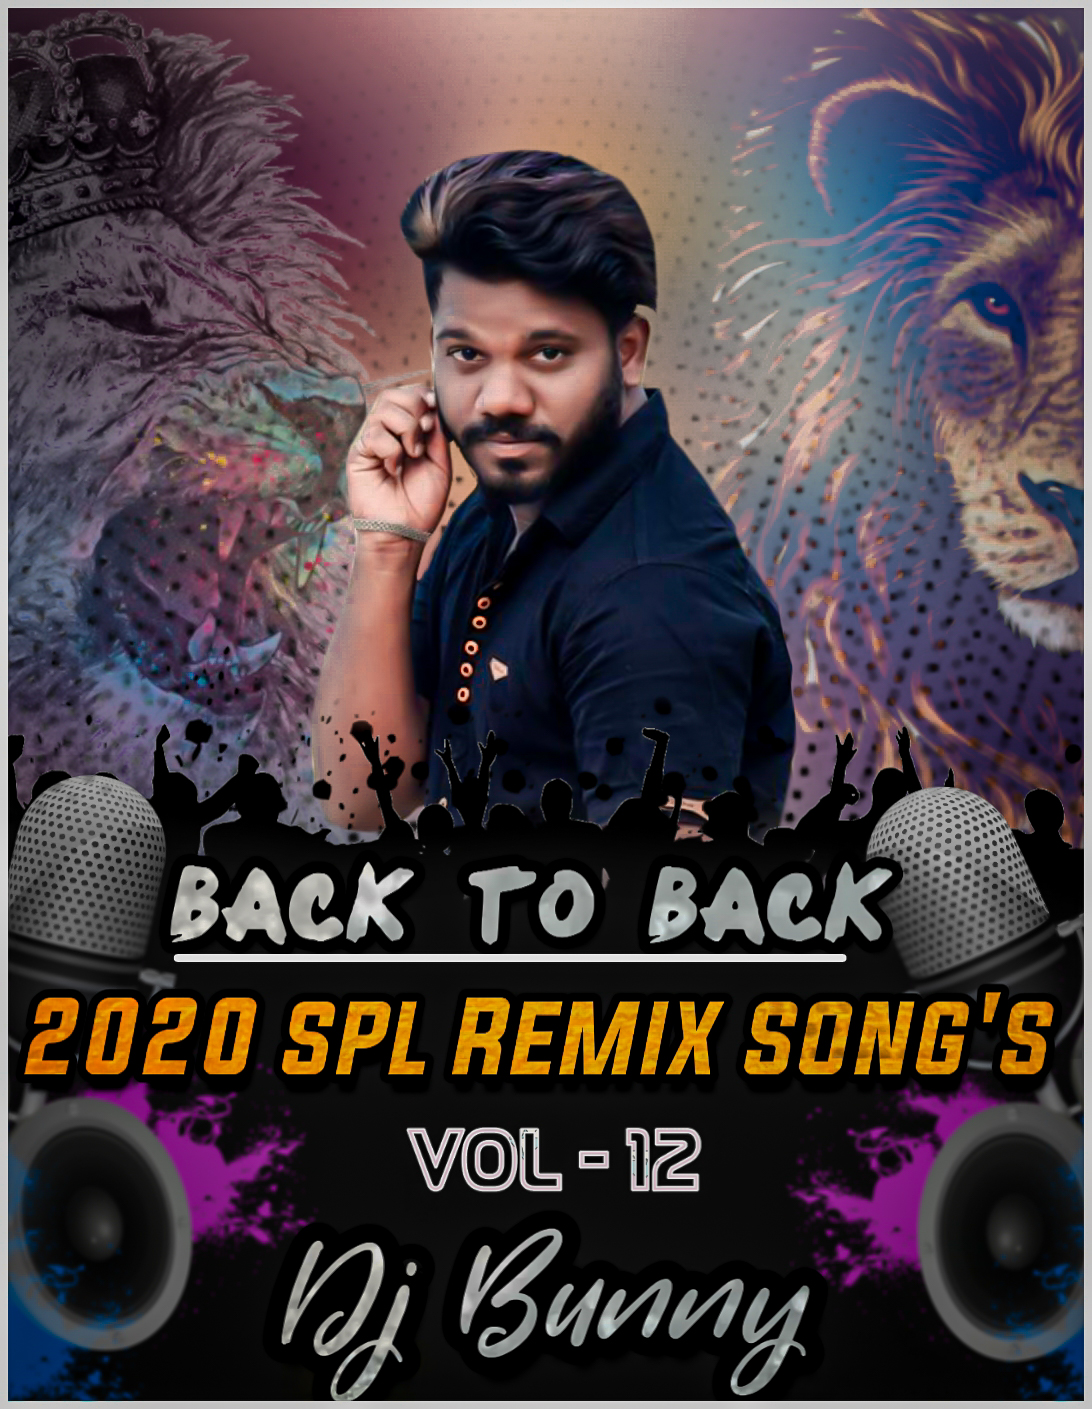 BACK-2-BACK-2020-REMIXES-VOL-12-DJ-BUNNY